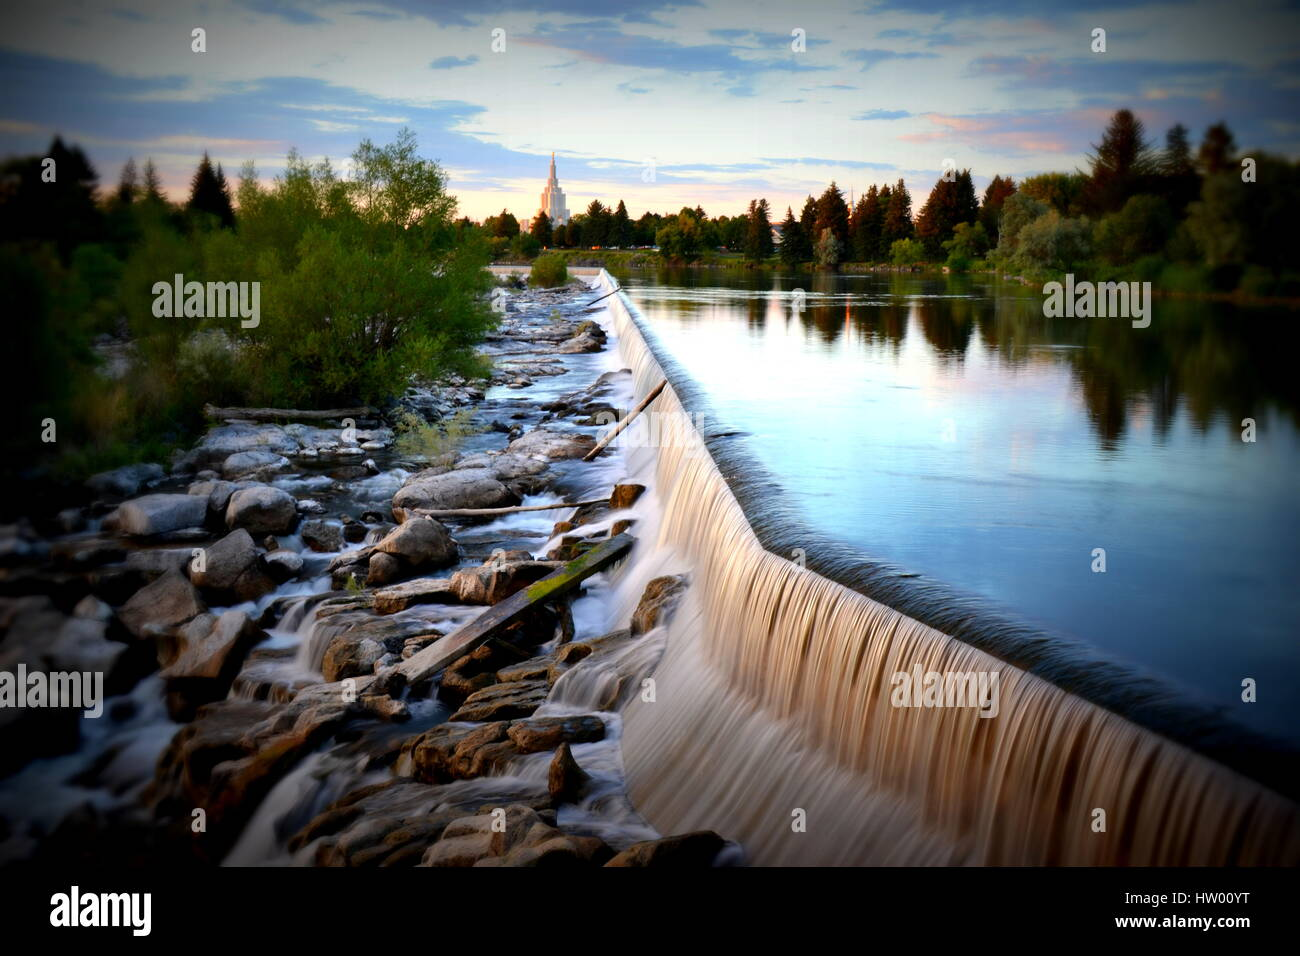 Those are shots of the Idaho falls view in Idaho falls, Idaho. These shots were taking a calm summer night in 2015. Stock Photo